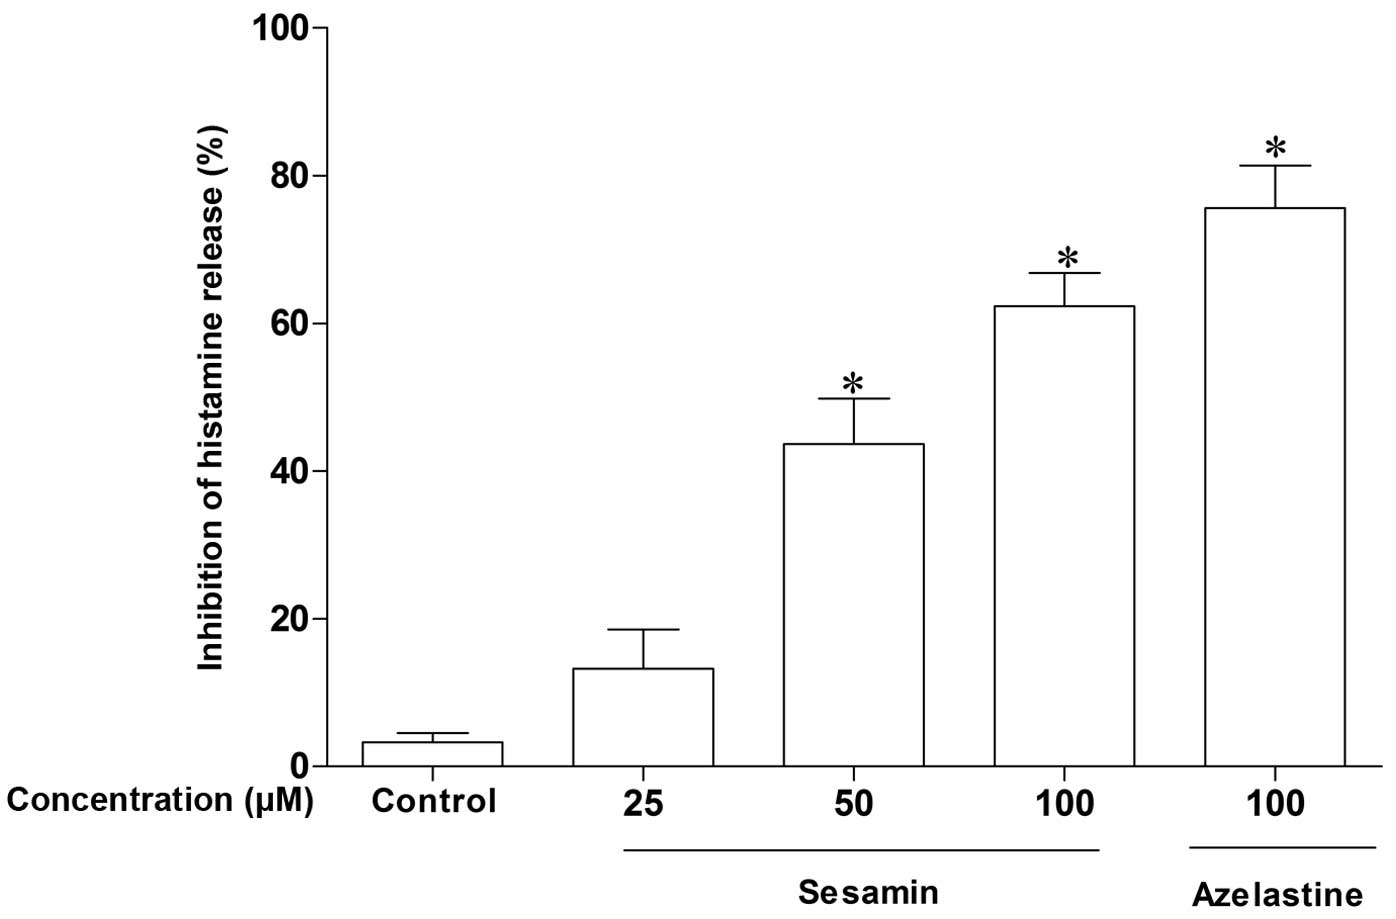 Sesamin attenuates mast cell-mediated allergic responses by